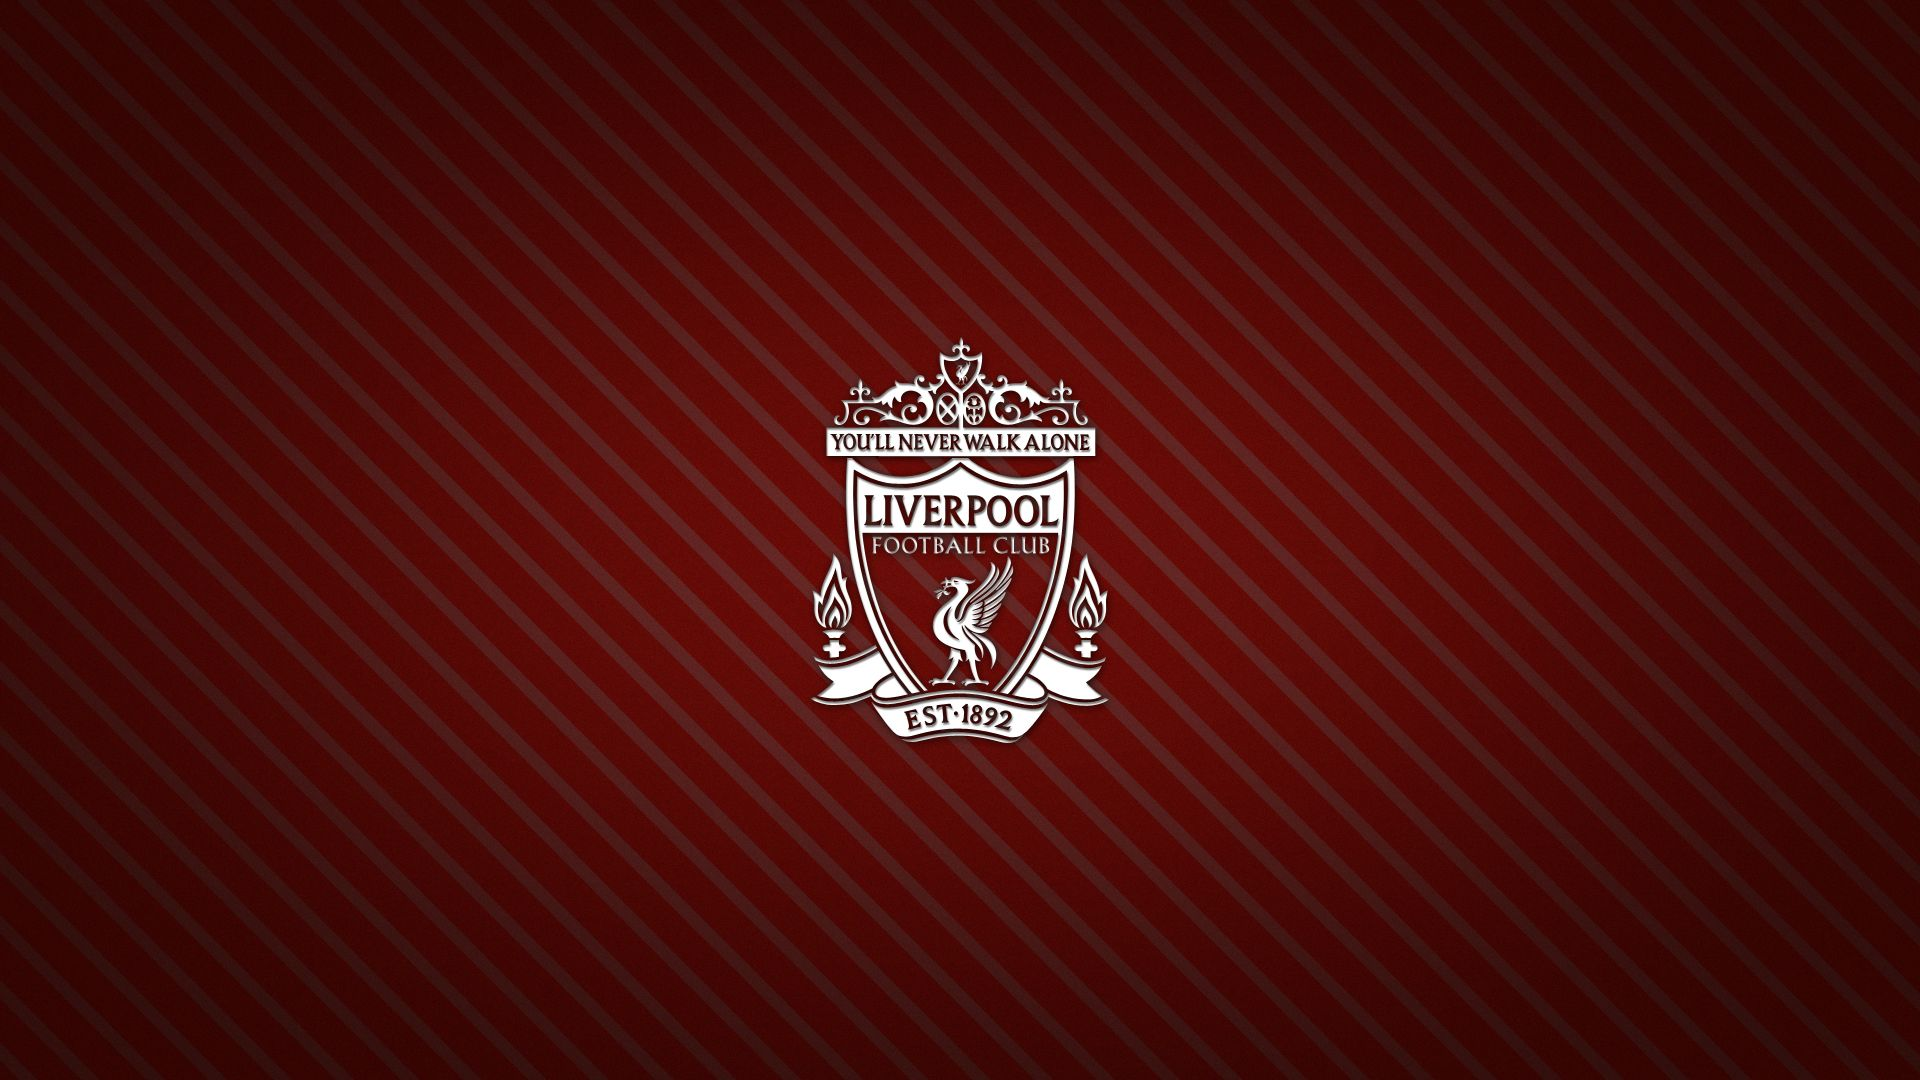 Widescreen Liverpool Fc Images | Su Mercer, 1920x1080 px